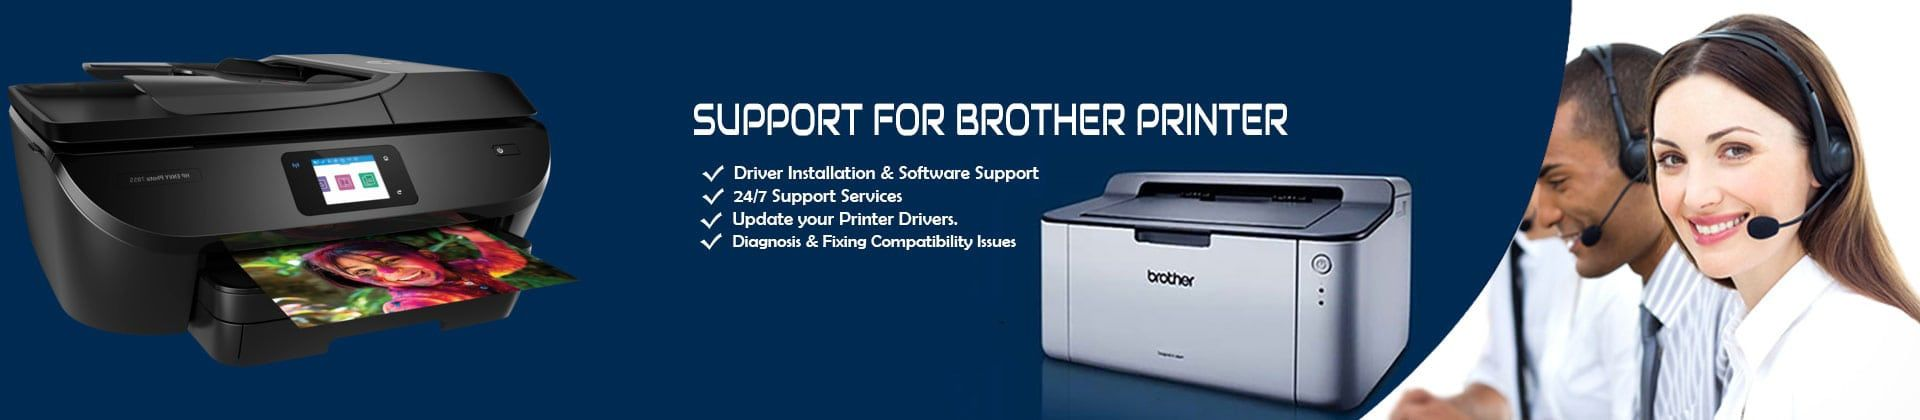 Brother Printer Offline | Brother Printer Tech Support